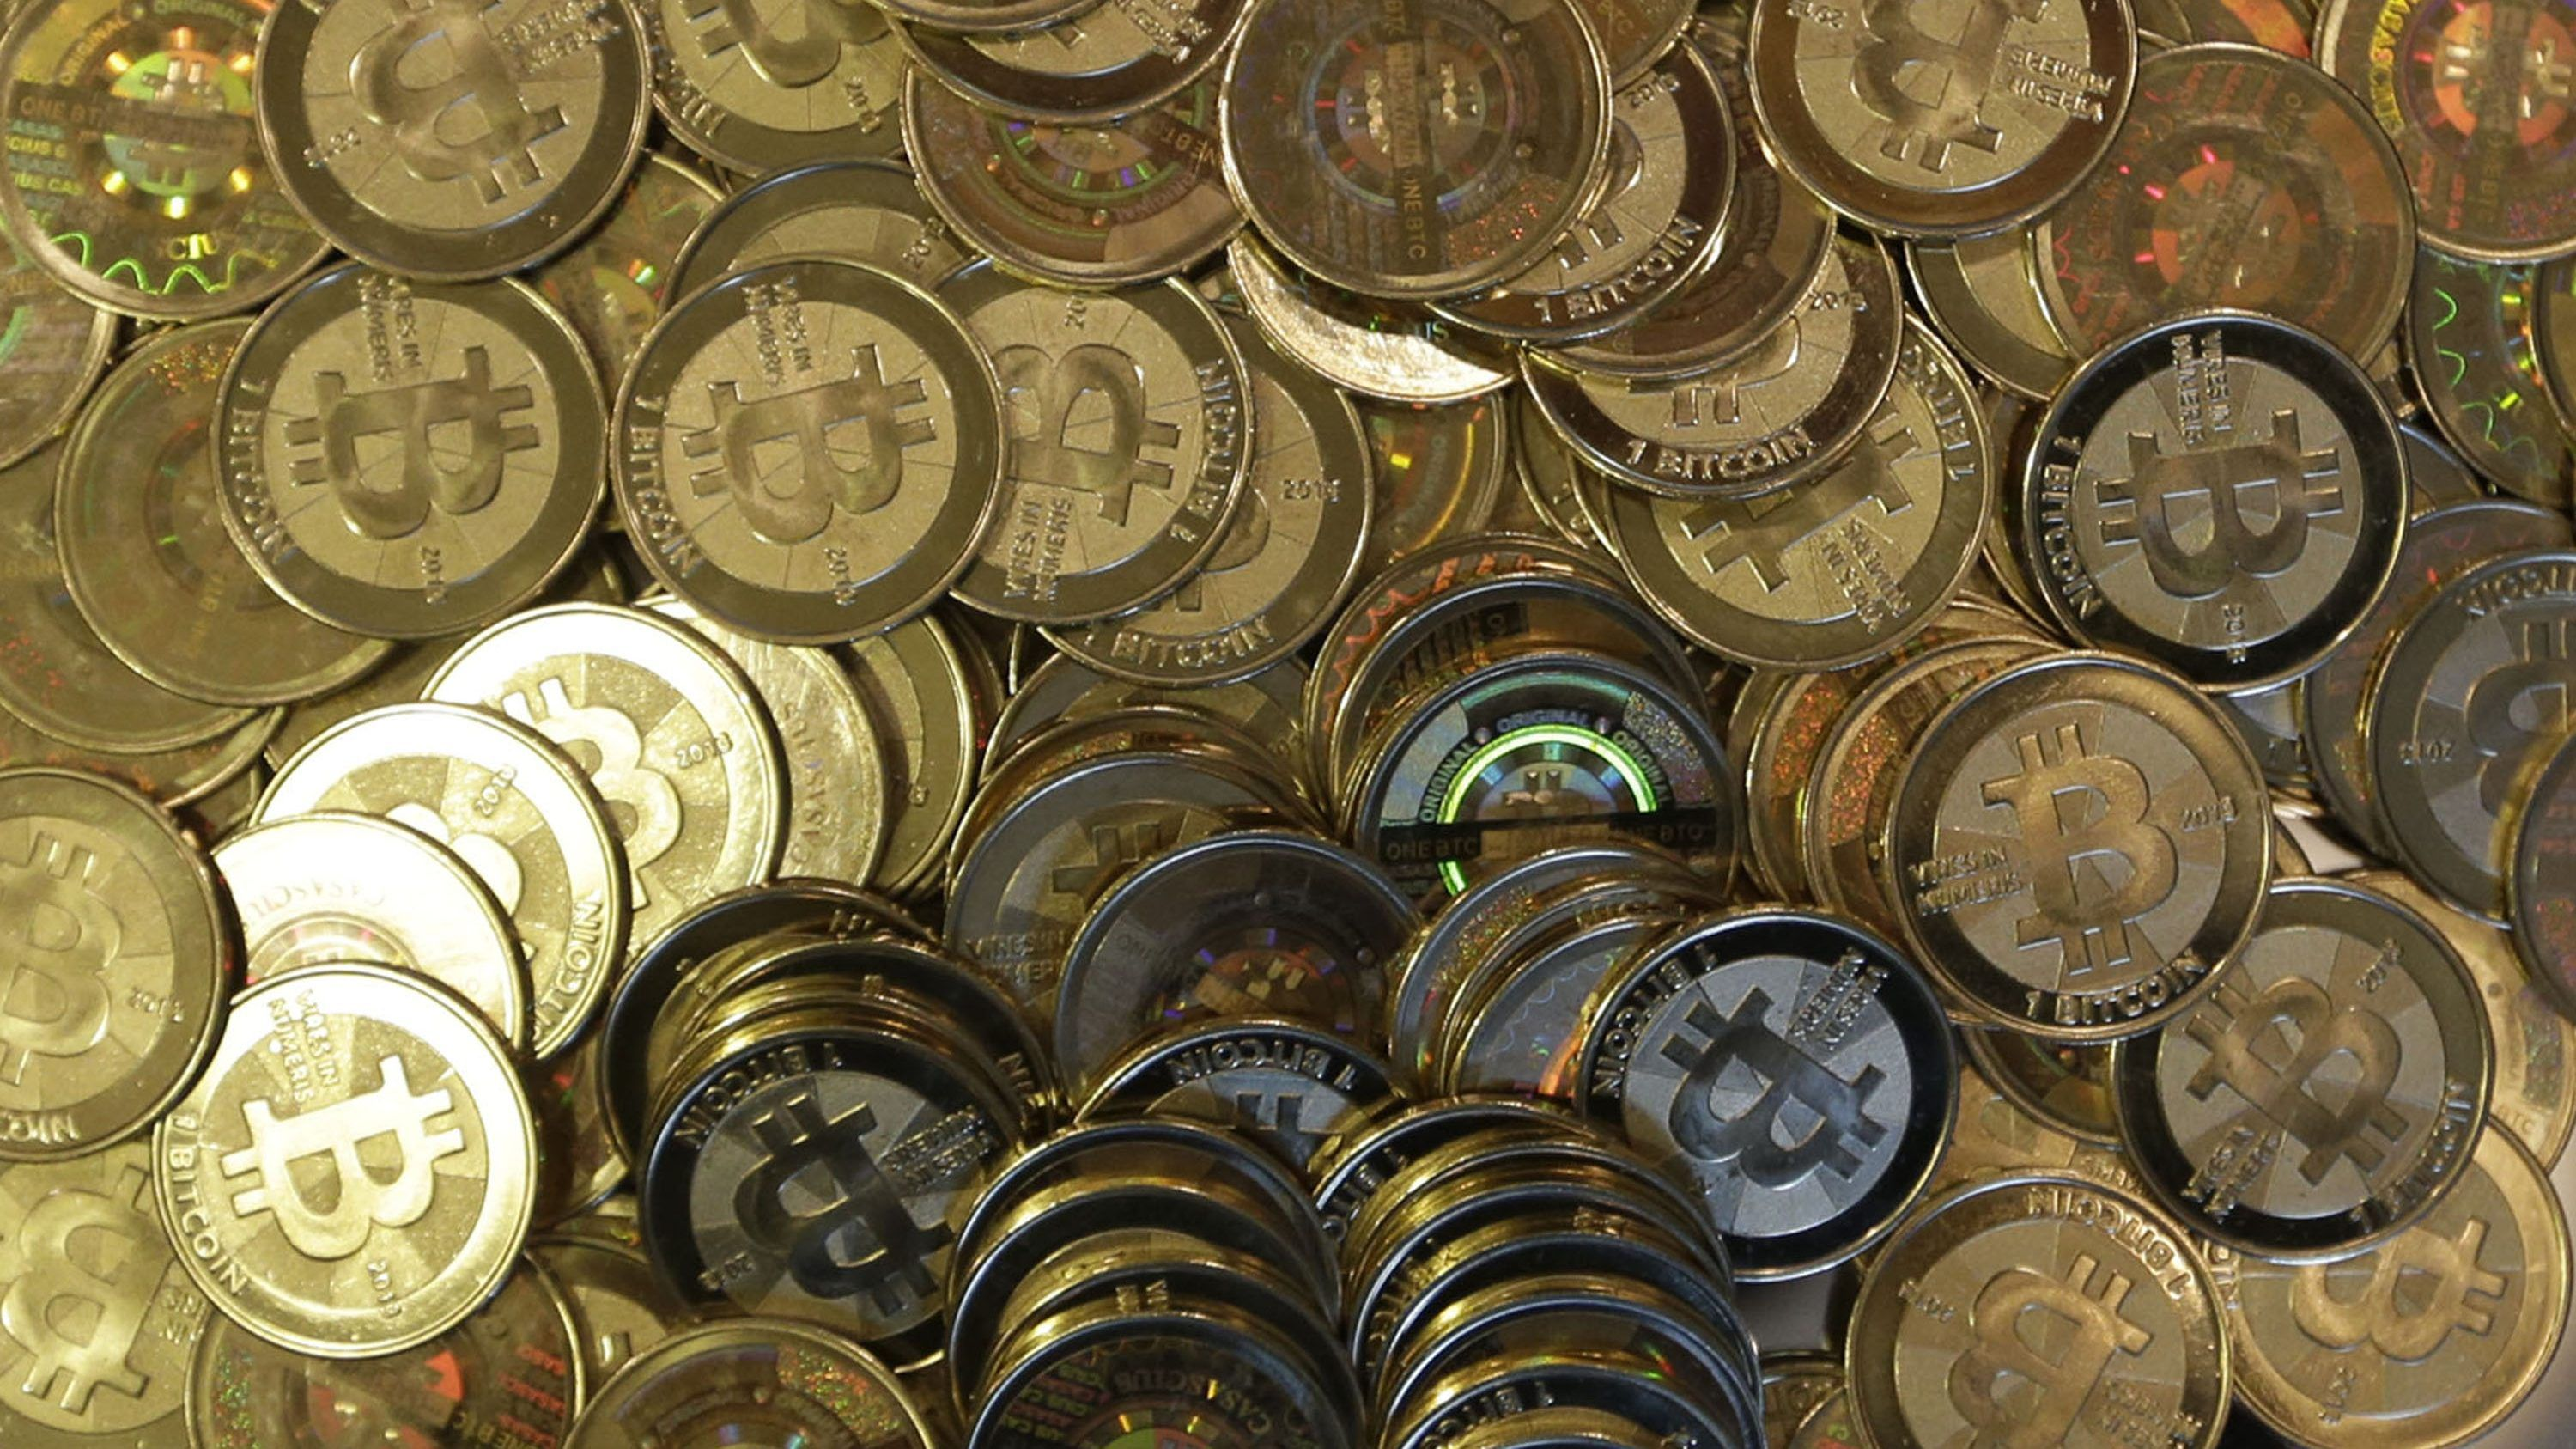 This April 3, 2013 photo shows bitcoin tokens at 35-year-old software engineer Mike Caldwell's shop in Sandy, Utah. Caldwell mints physical versions of bitcoins, cranking out homemade tokens with codes protected by tamper-proof holographic seals, a retro-futuristic kind of prepaid cash. With up to 70,000 transactions each day over the past month, bitcoins have been propelled from the world of Internet oddities to the cusp of mainstream use, a remarkable breakthrough for a currency which made its online debut only four years ago.